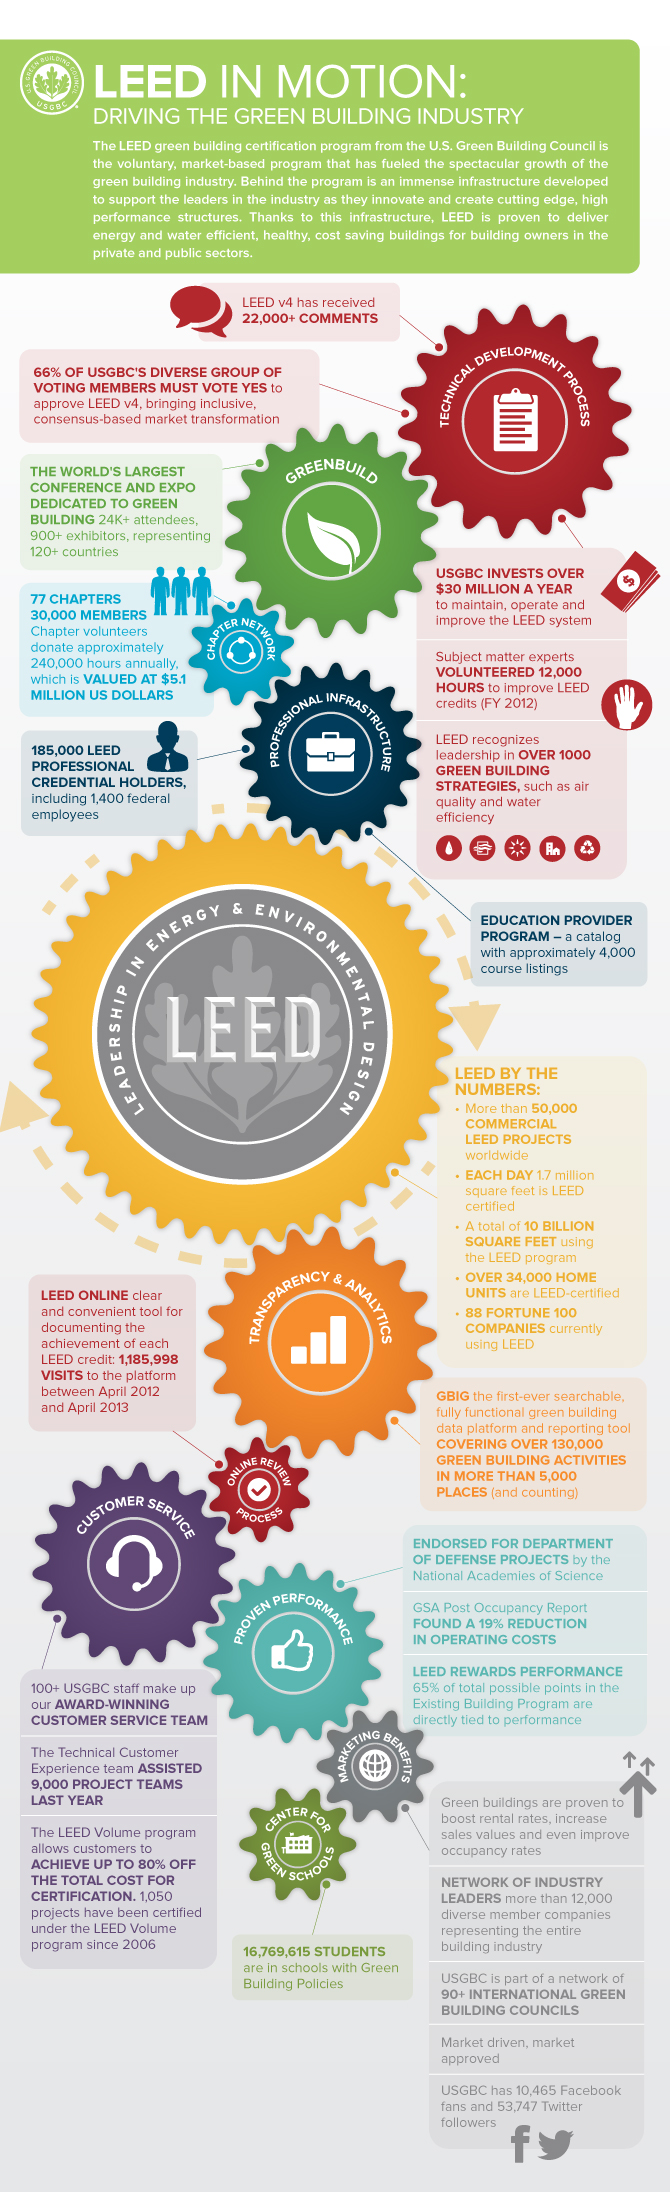 Infographic: LEED in Motion